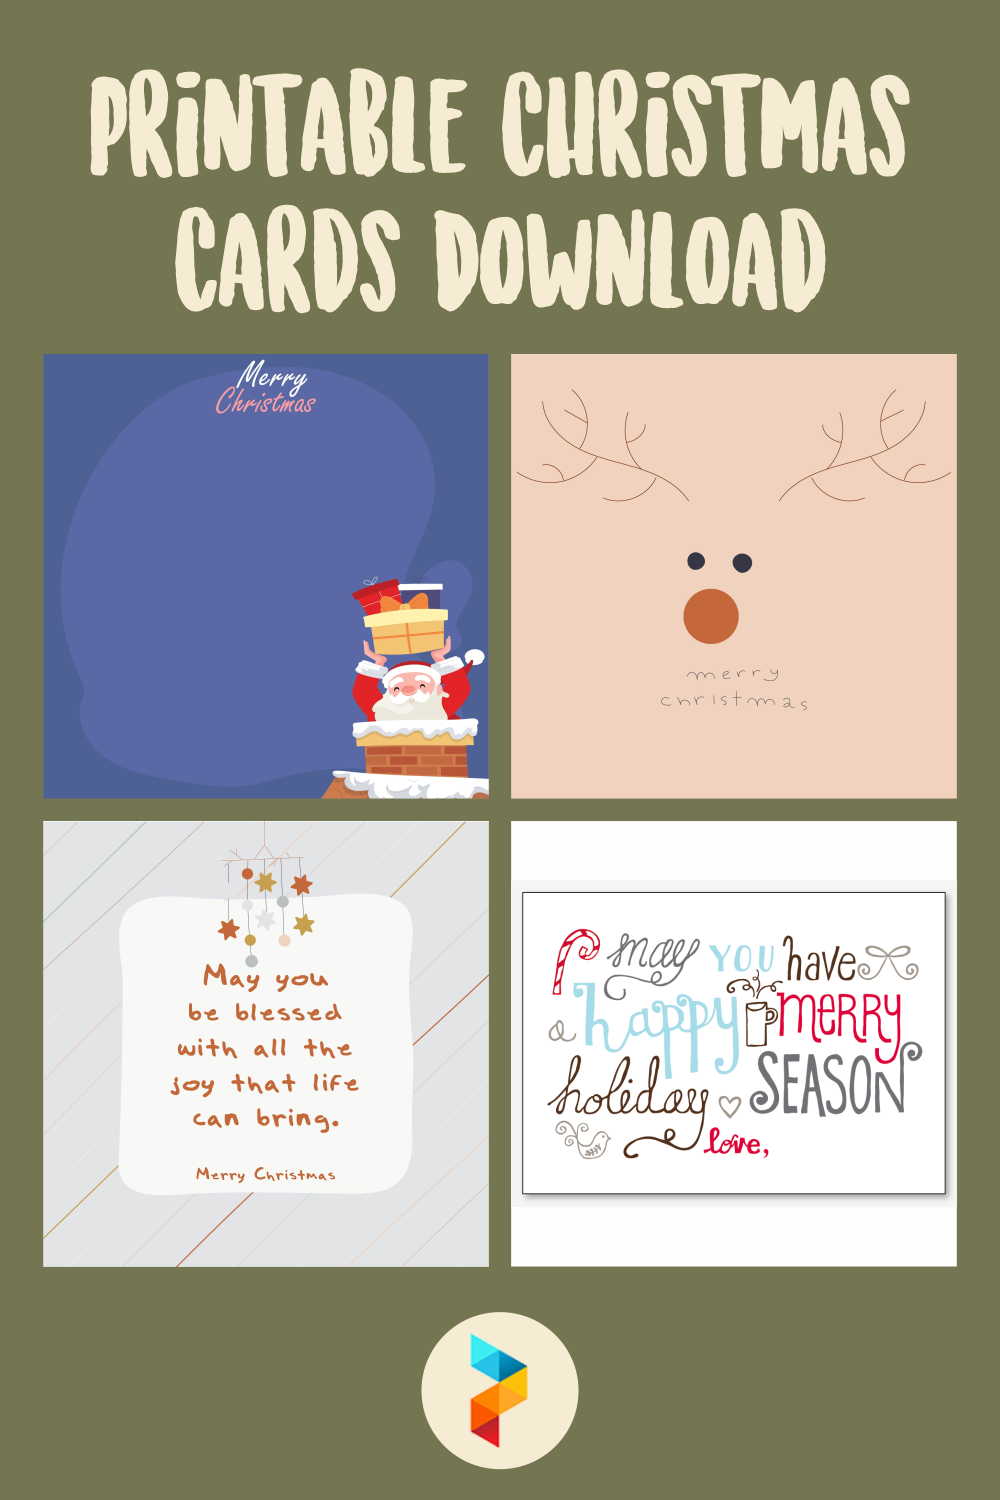 Printable Christmas Cards Download